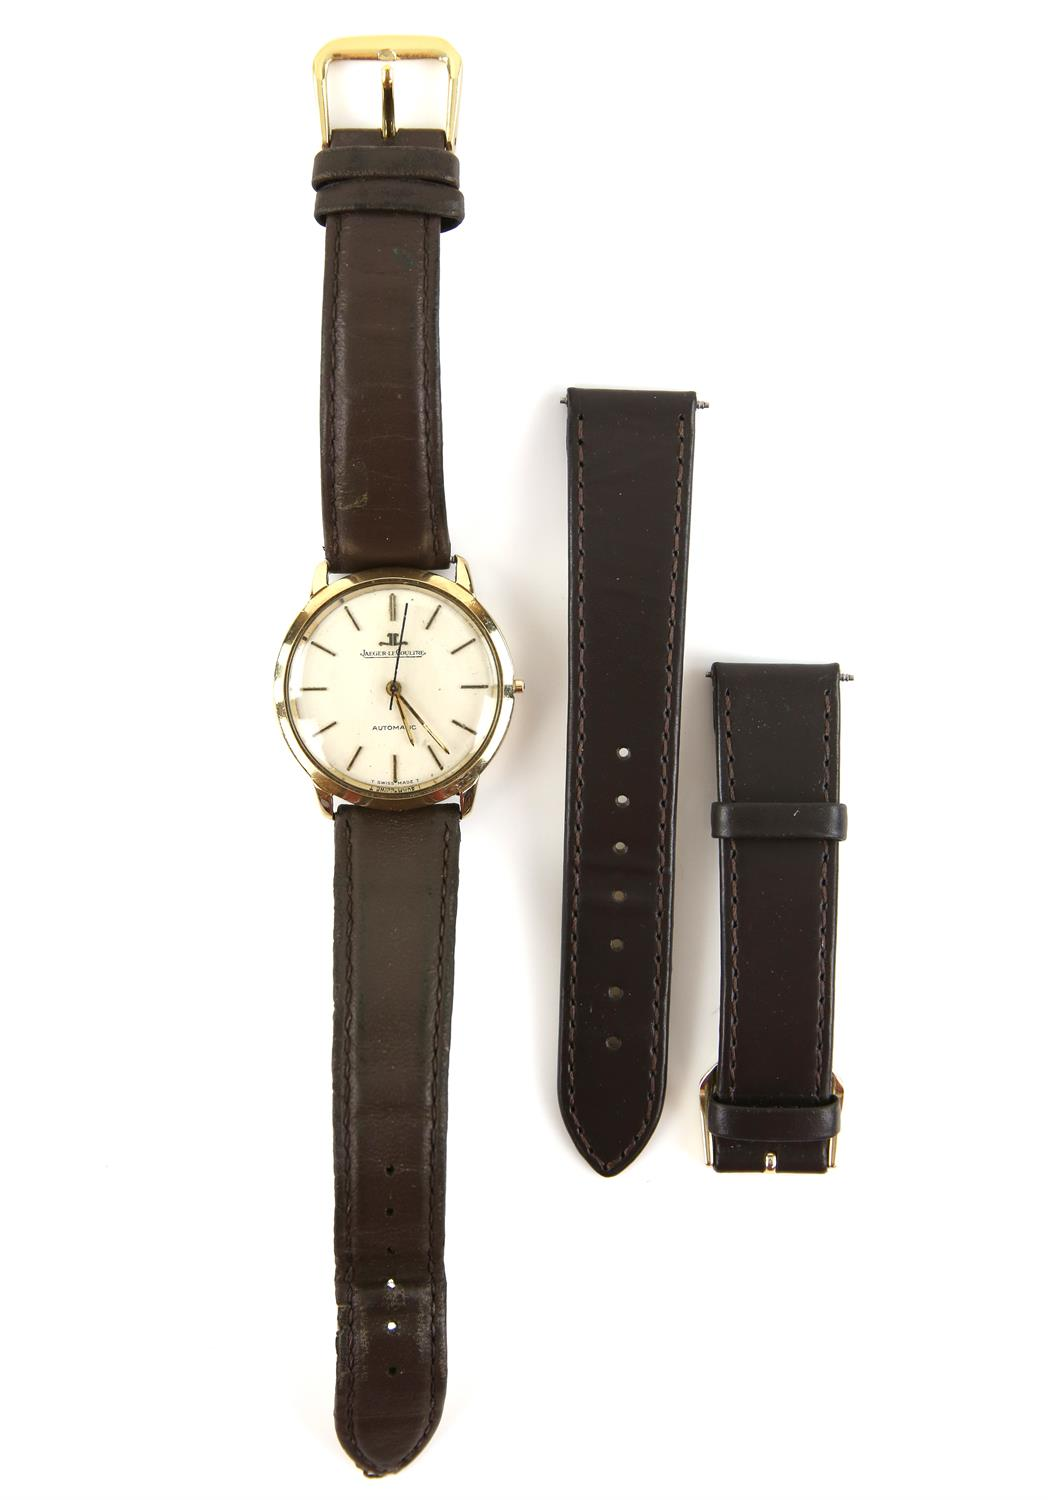 Jaeger Le Coultre, Reference 386 91 A Gentleman's gold cased wristwatch, signed silvered dial with - Image 4 of 4